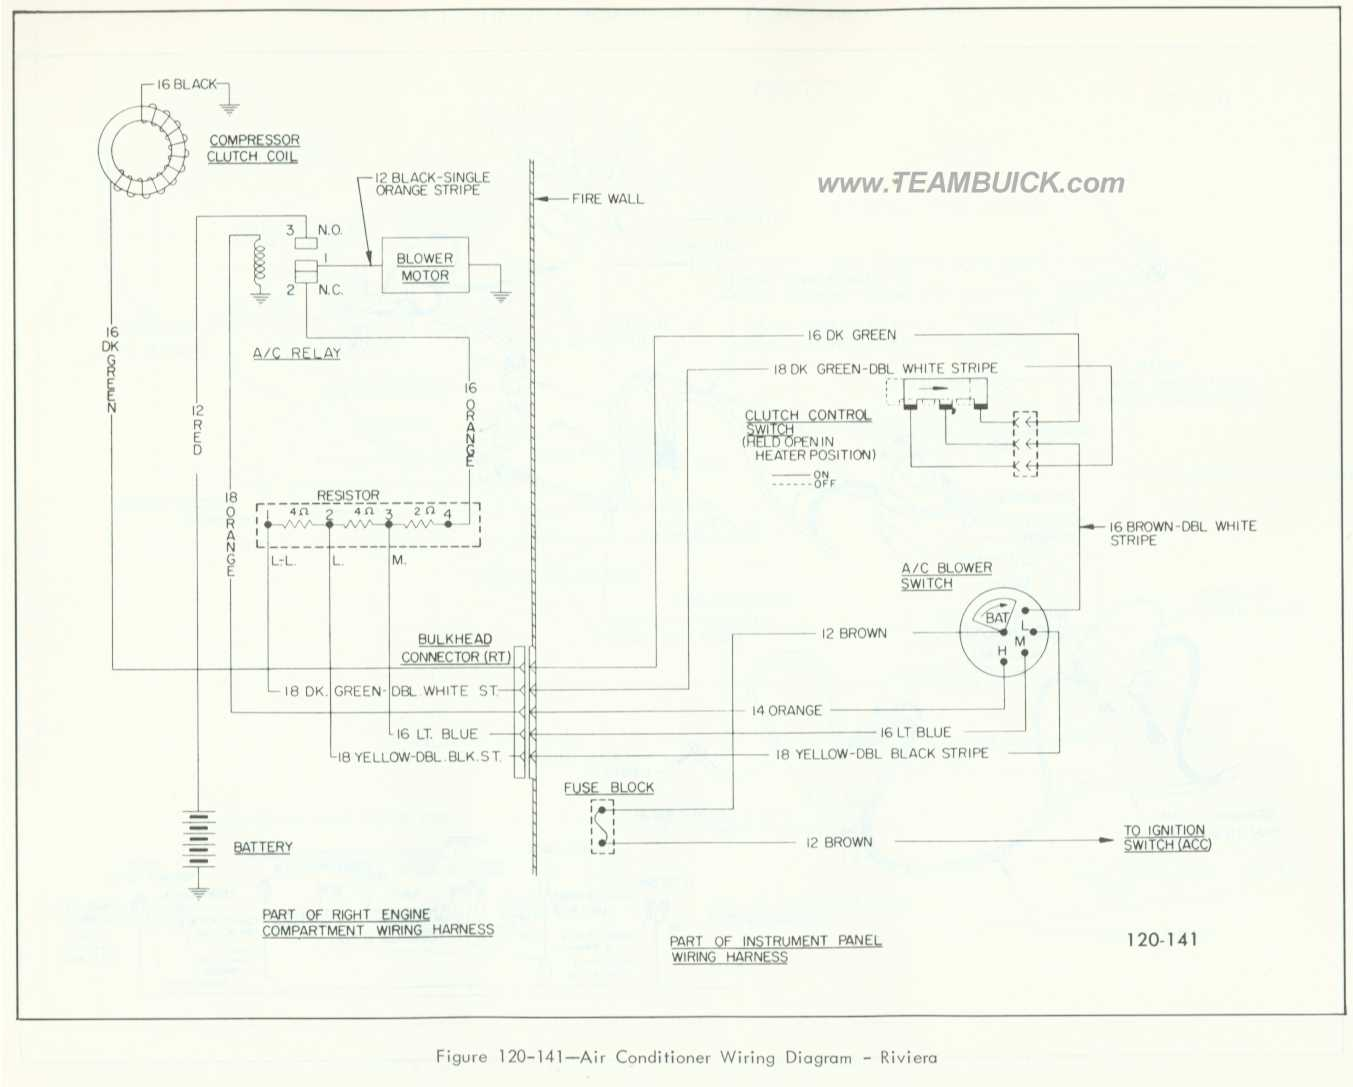 1966 Buick Riviera Wiring Diagram Diagrams 95 Engine Air Conditioner Rh Teambuick Com 1995